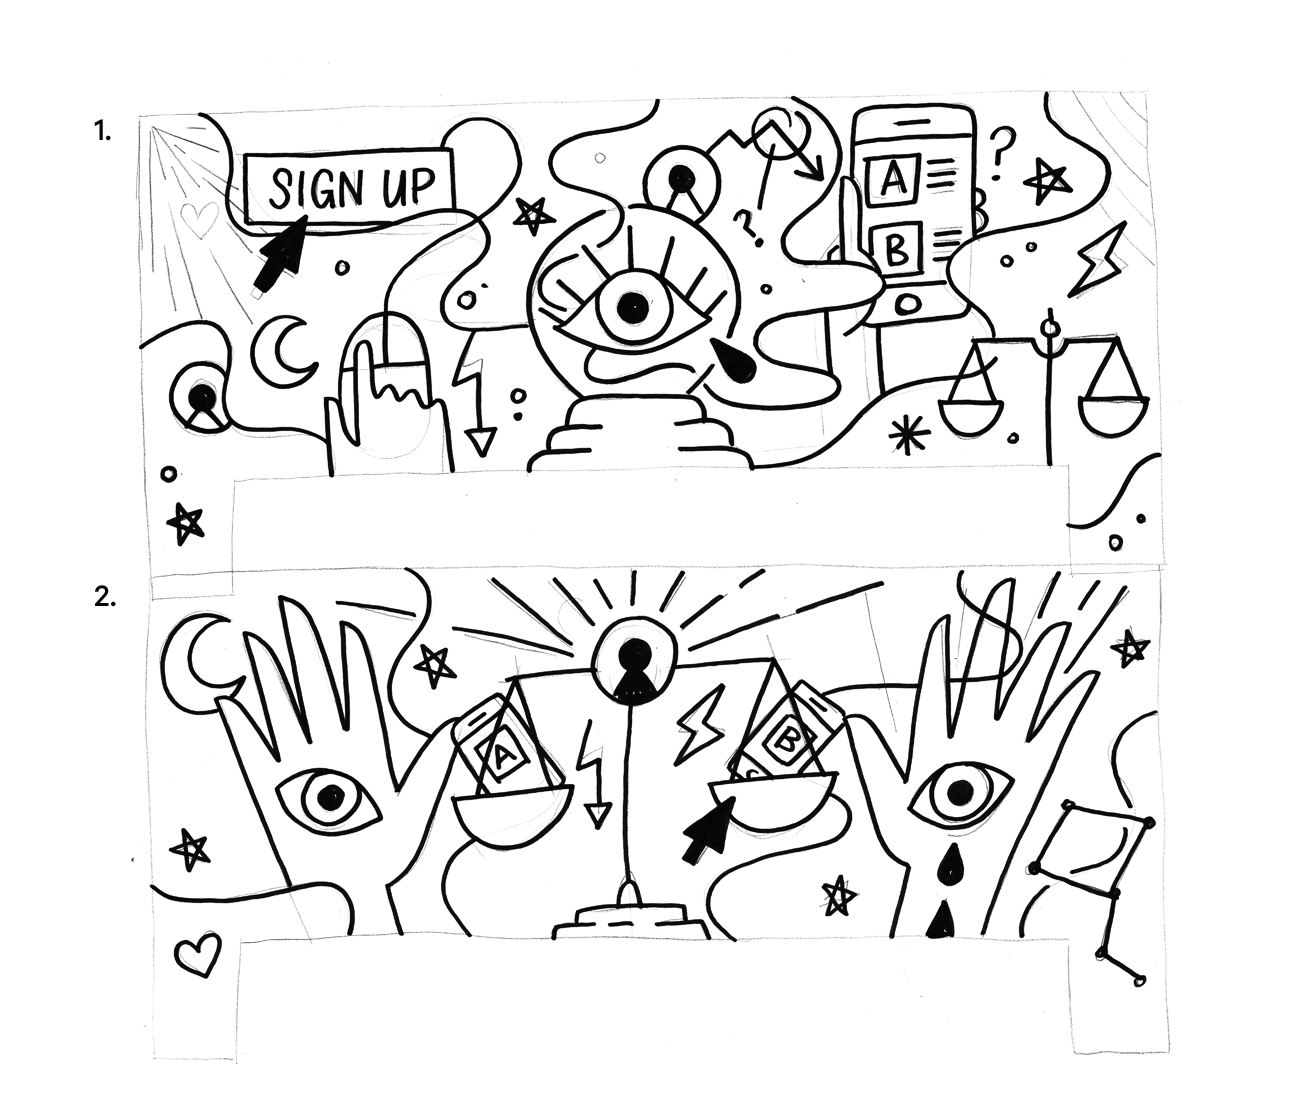 Behind The Scenes On Inside Intercom Illustrations High Quality Early Sketches From Illustrator Laura Bohill